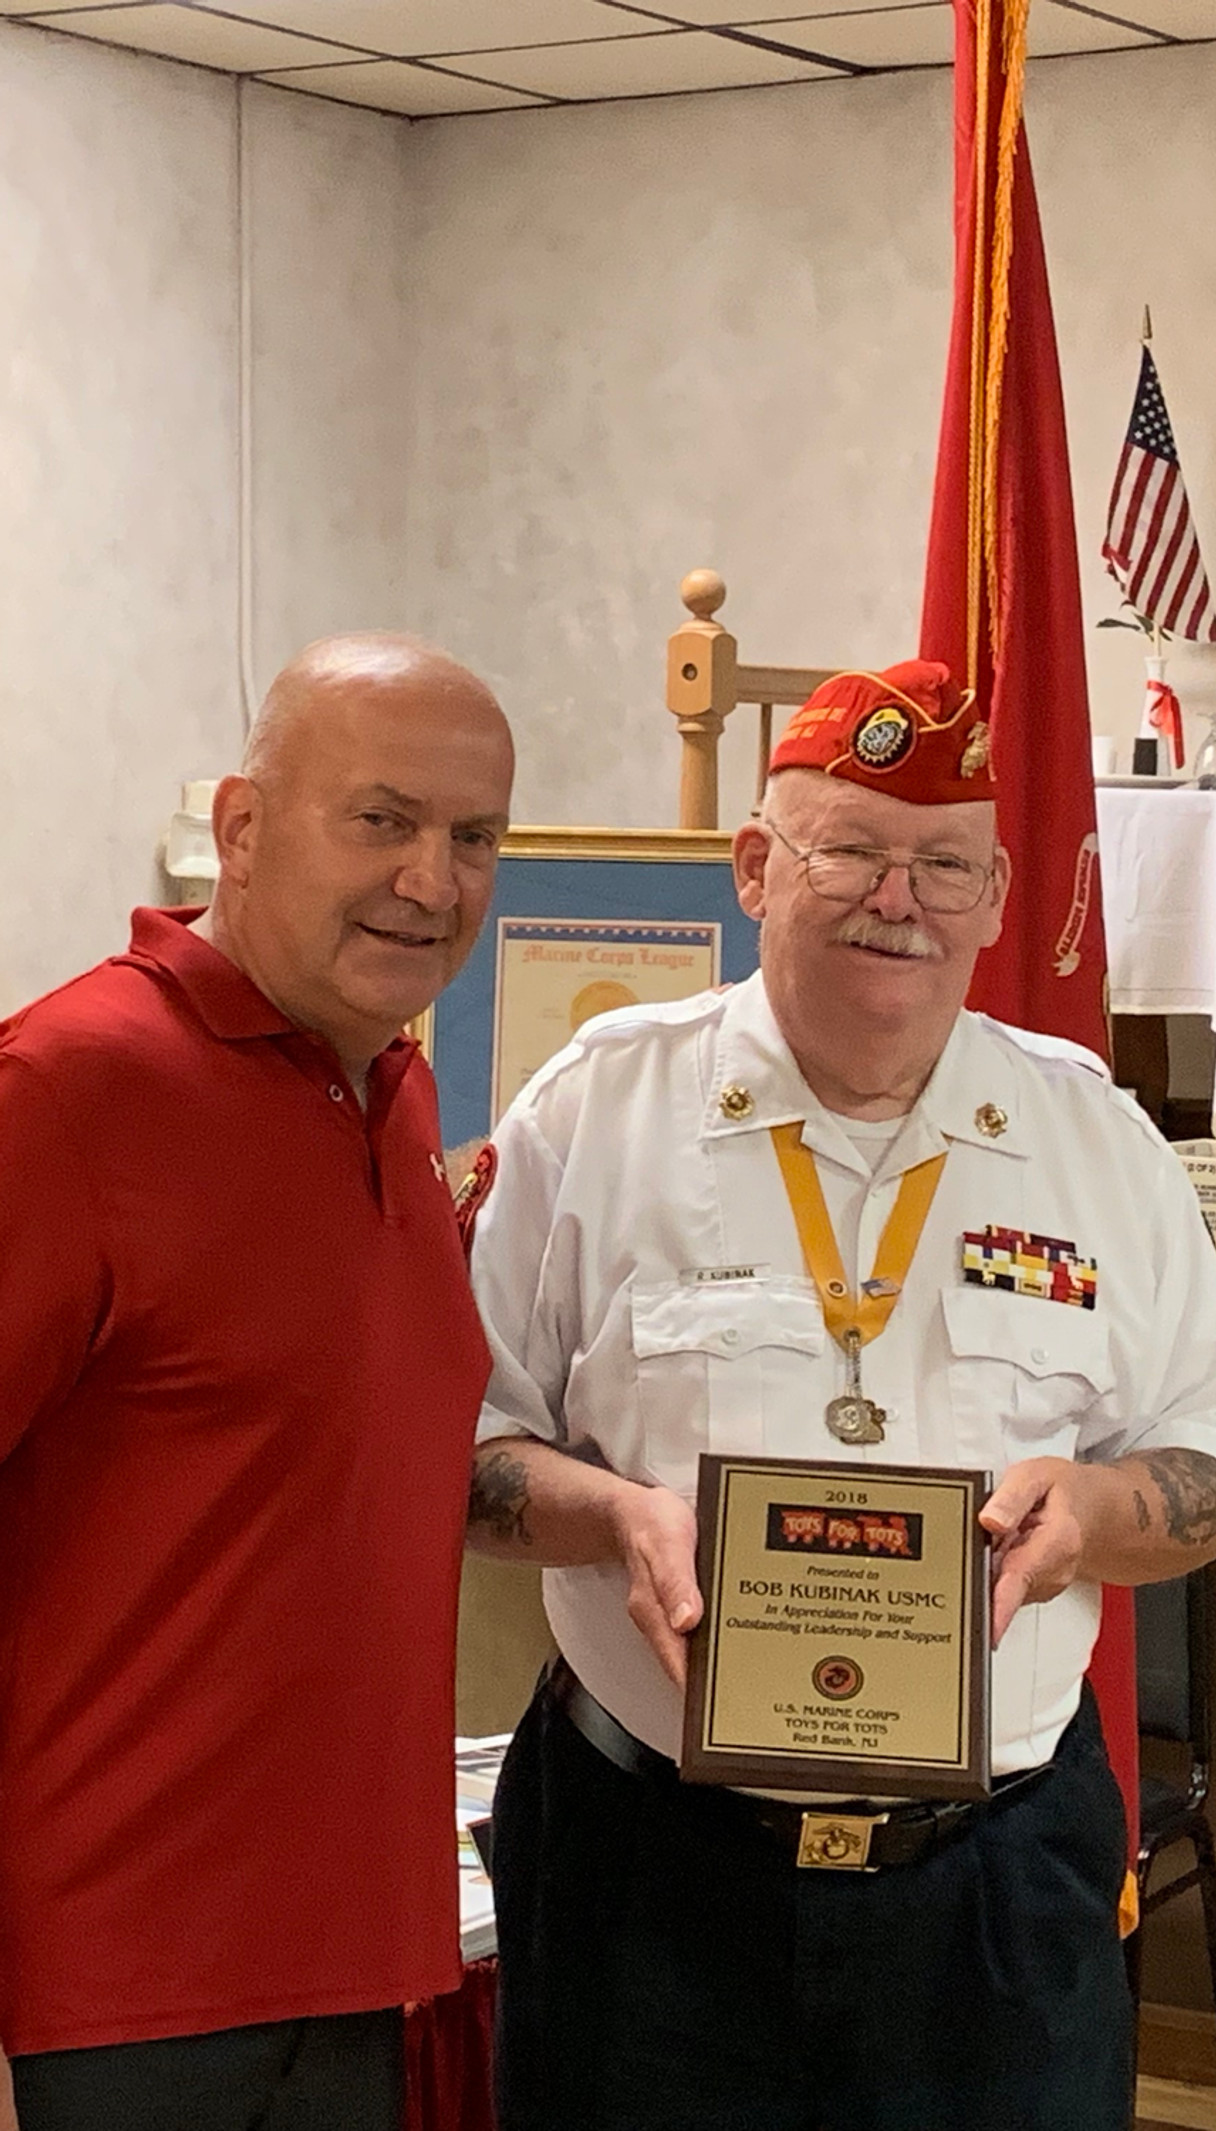 Toys For Tots Chairman Bob Kubinak recieves achievement award from Toys For Tots 2019